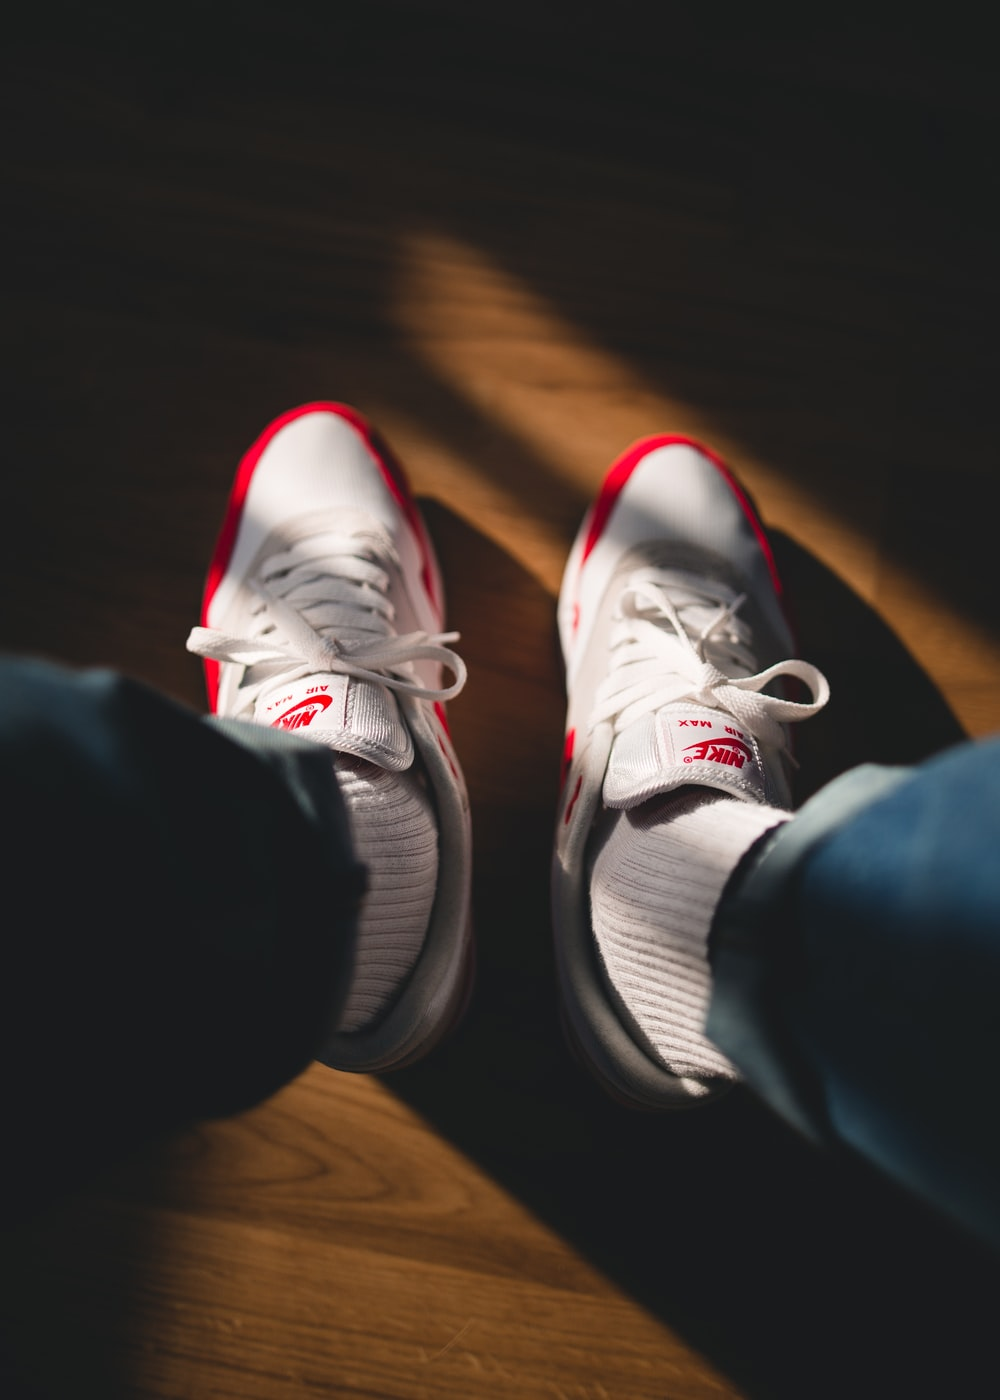 person holding white-and-red Nike running shoes